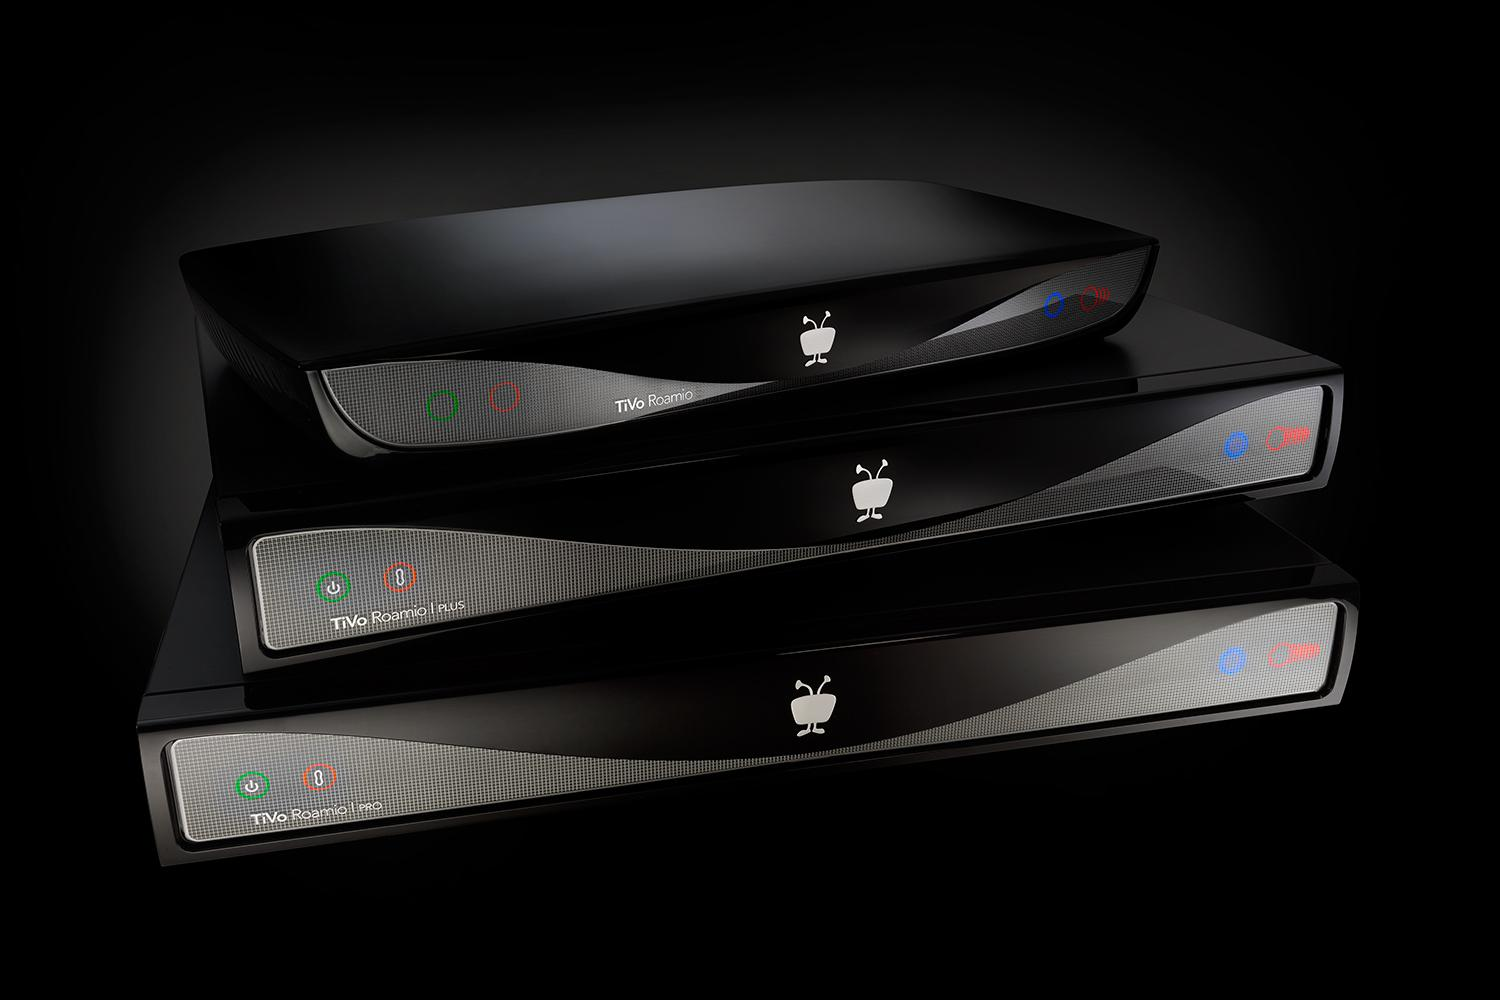 Tivo lifetime service coupons